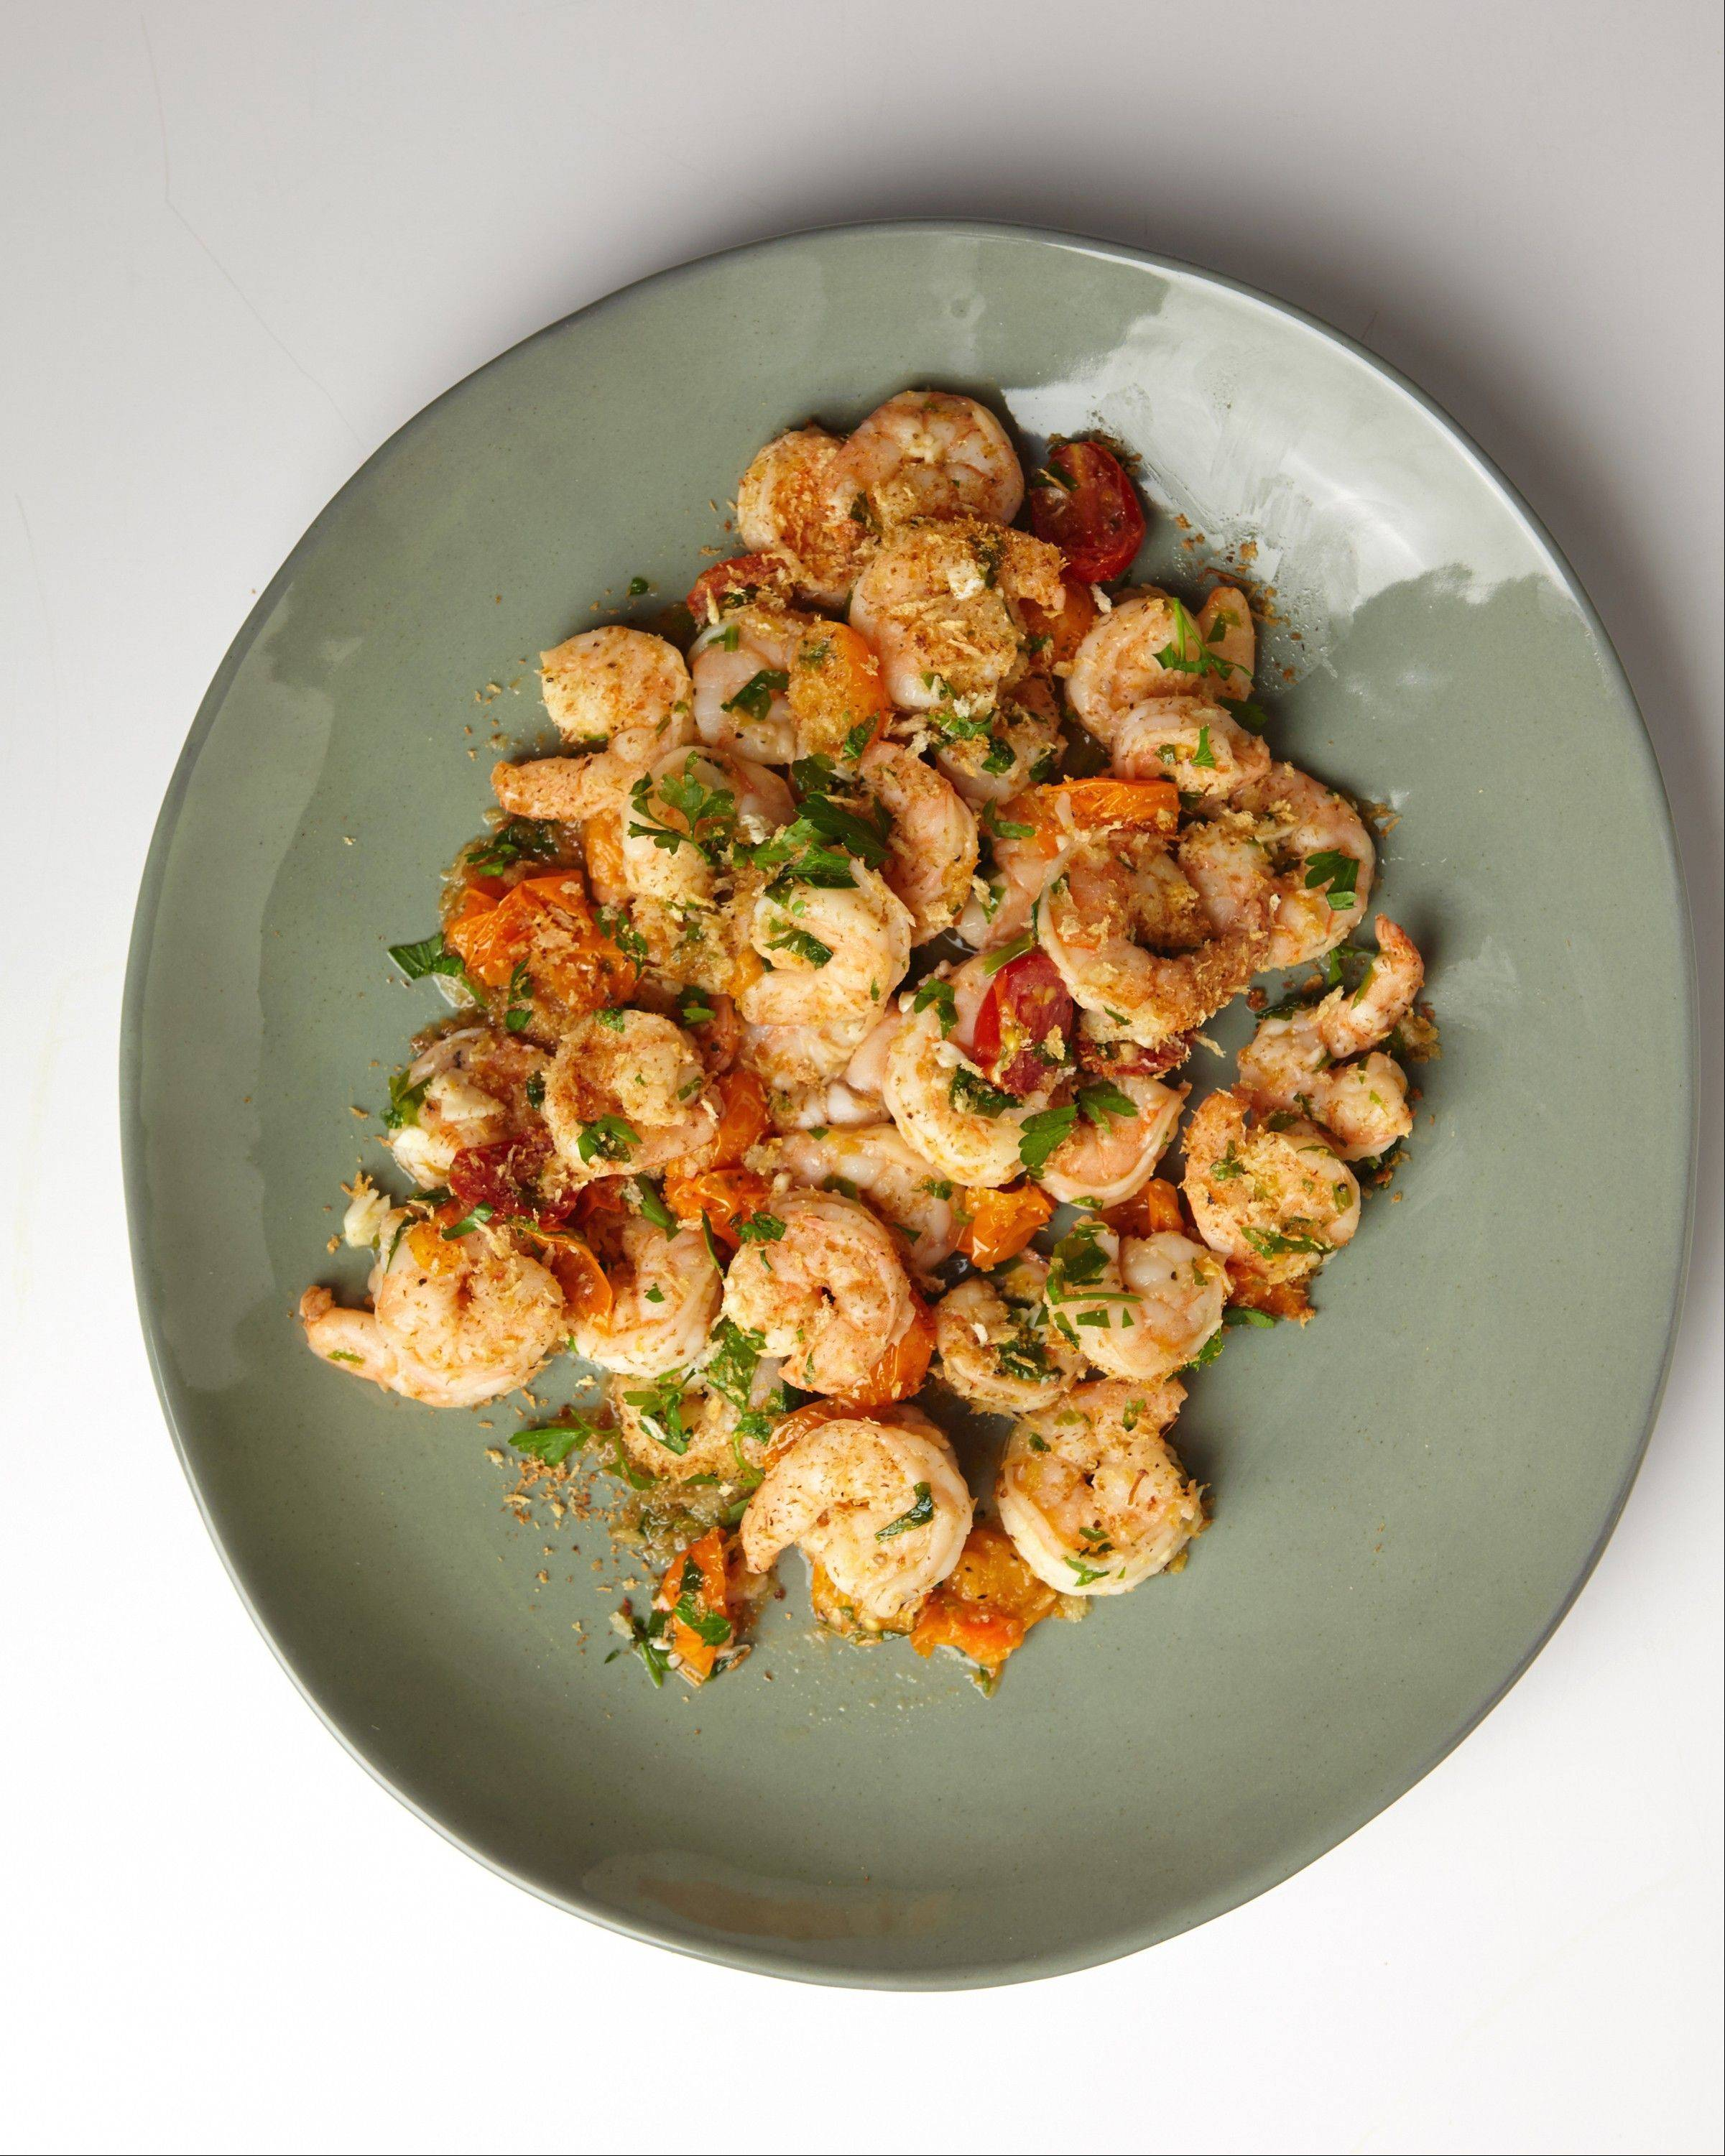 On the fridge: Garlic crusted shrimp comes together in 20 minutes